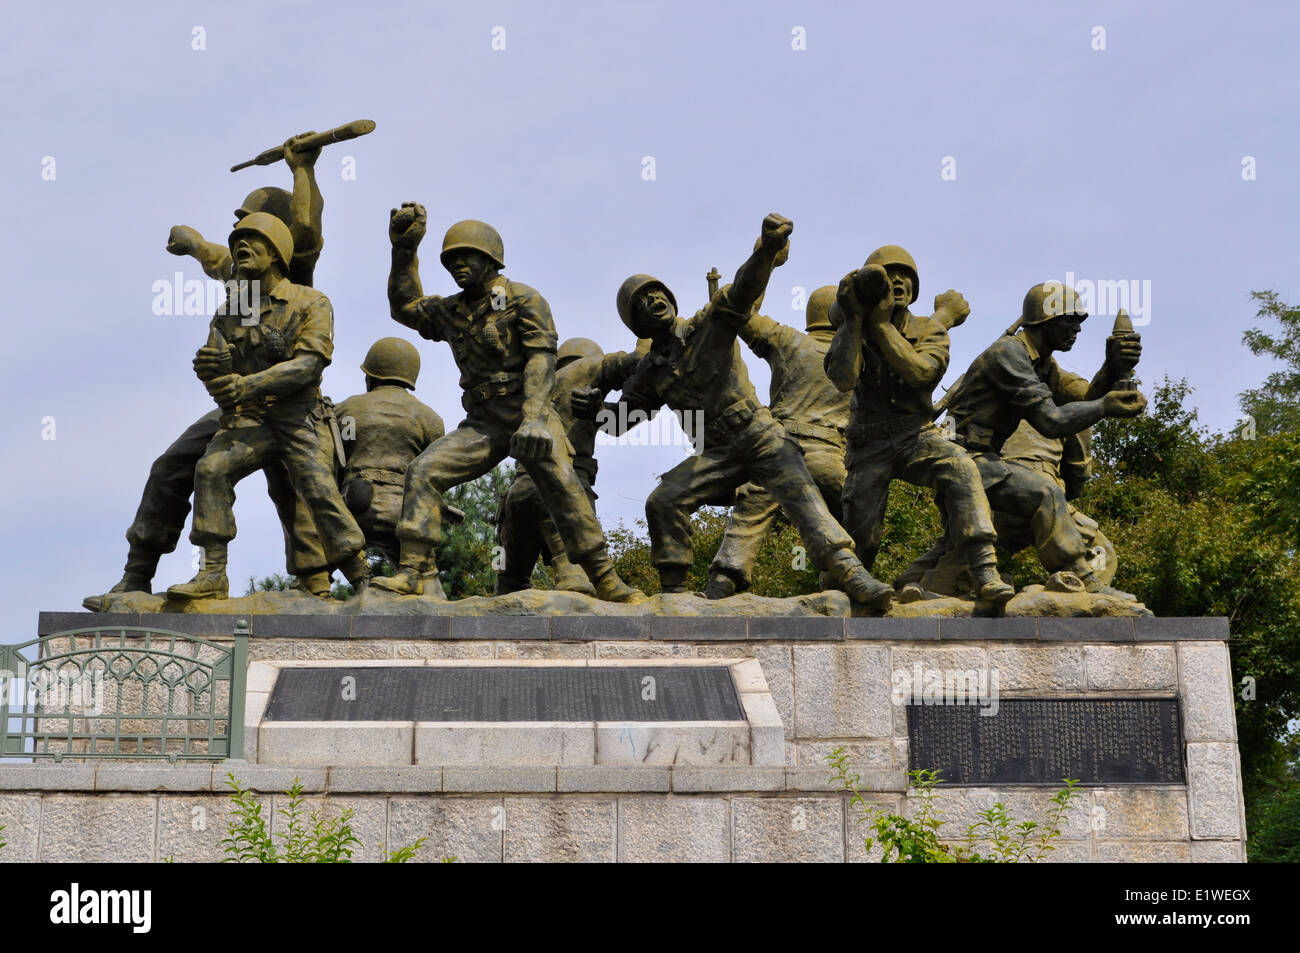 Ten Human Bombs and Memorial Cemetery monuments,Unification Park,Paju,South Korea - Stock Image